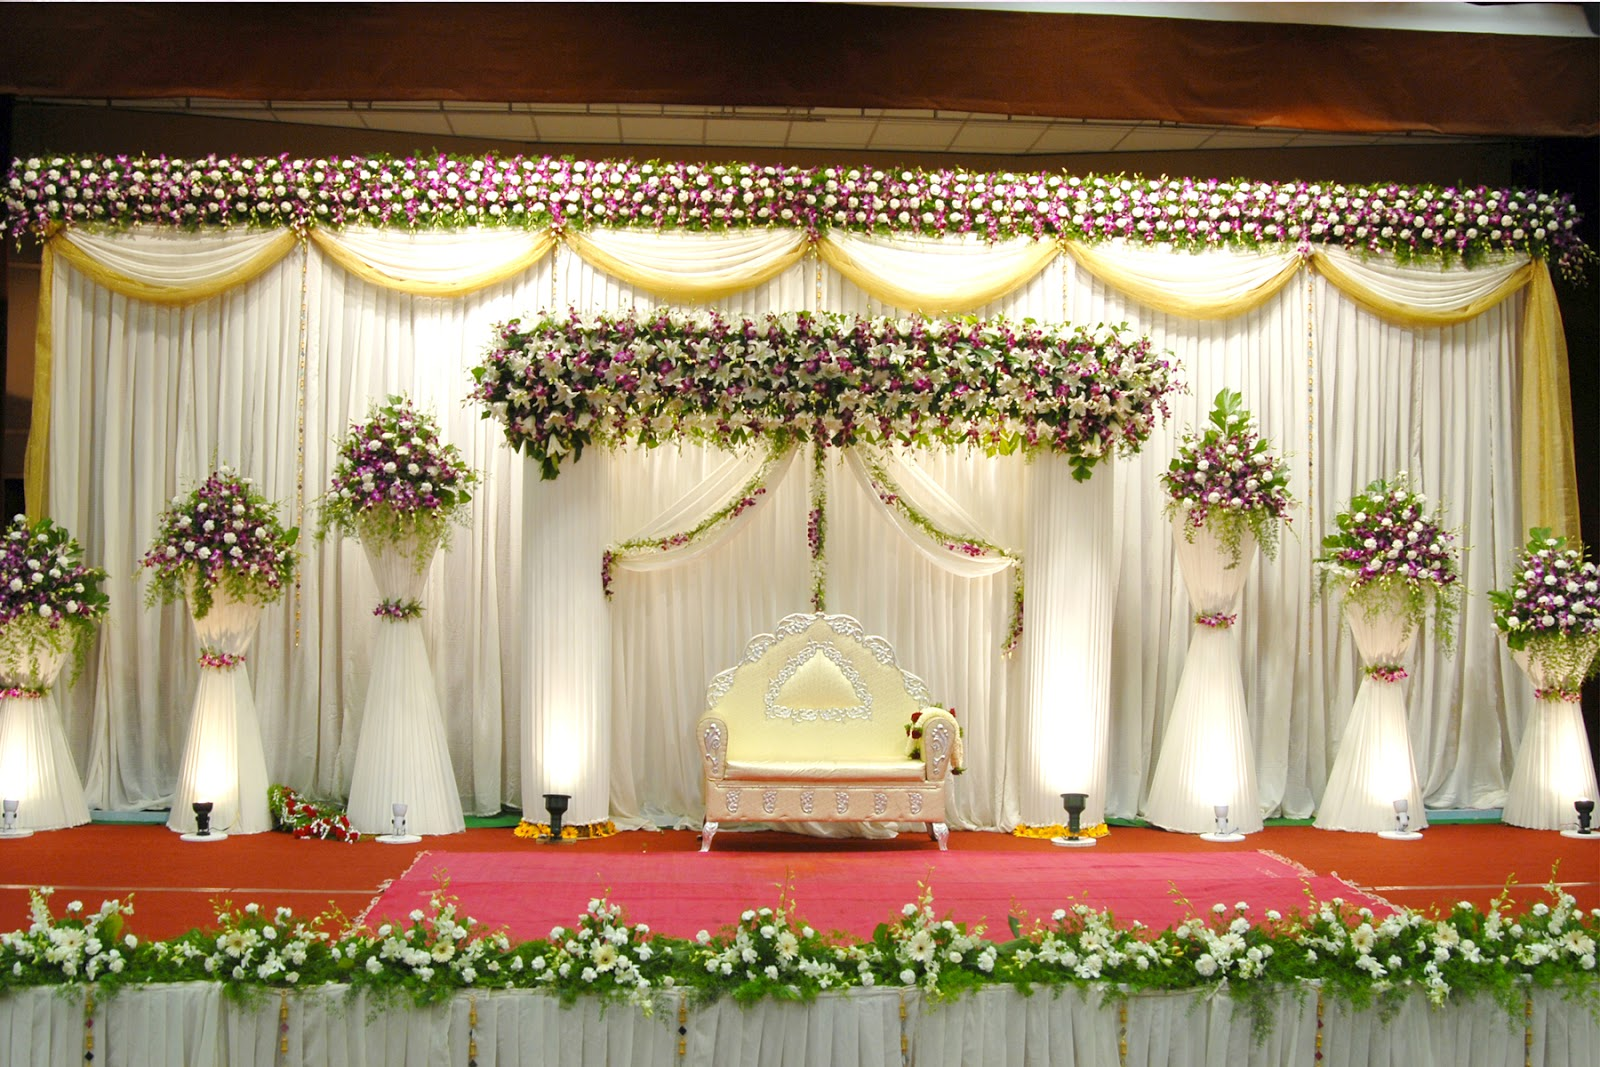 Decoration Ideas For Wedding: About Marriage: Marriage Decoration Photos 2013